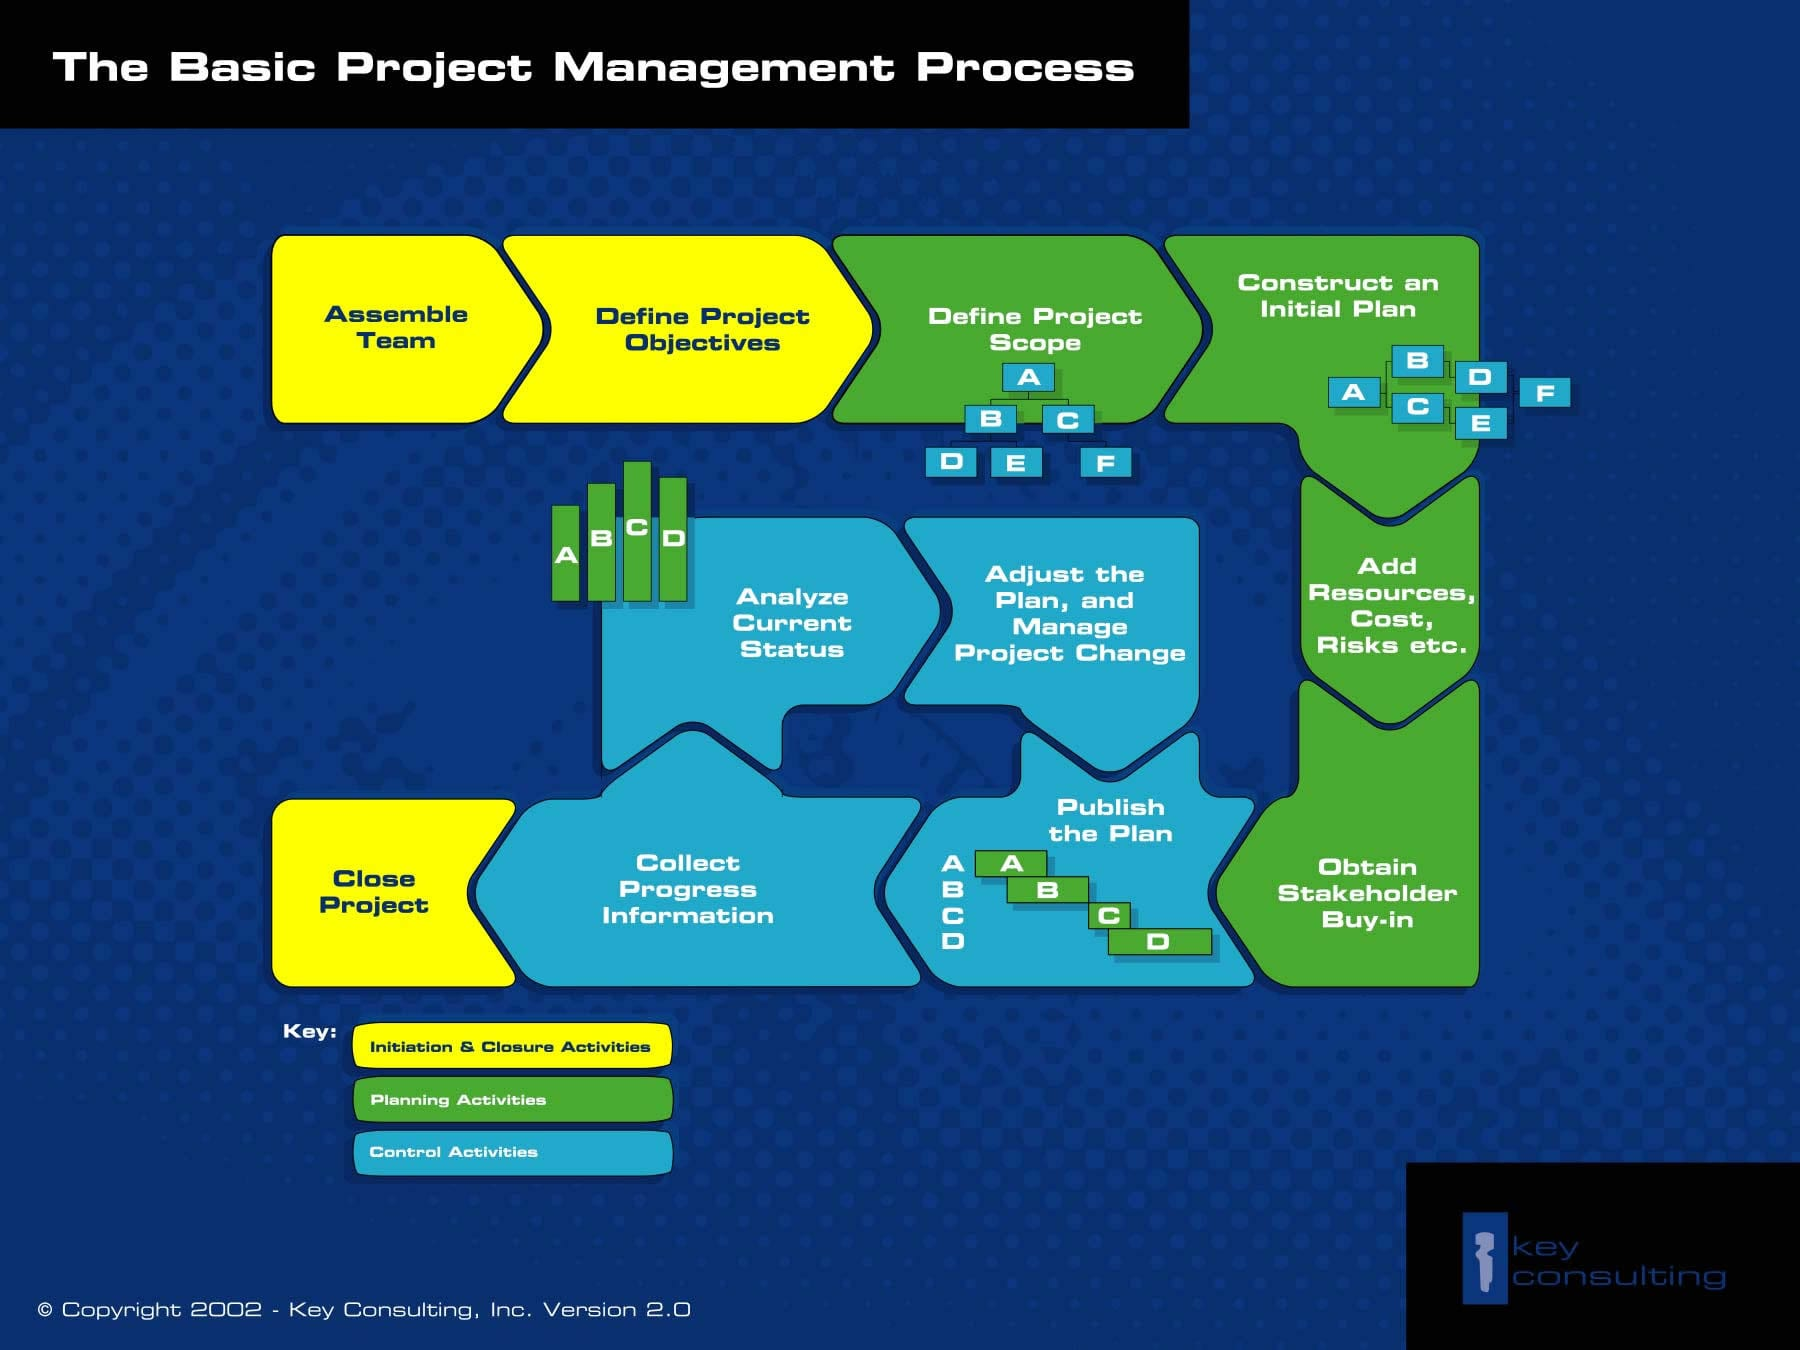 the basic project management process